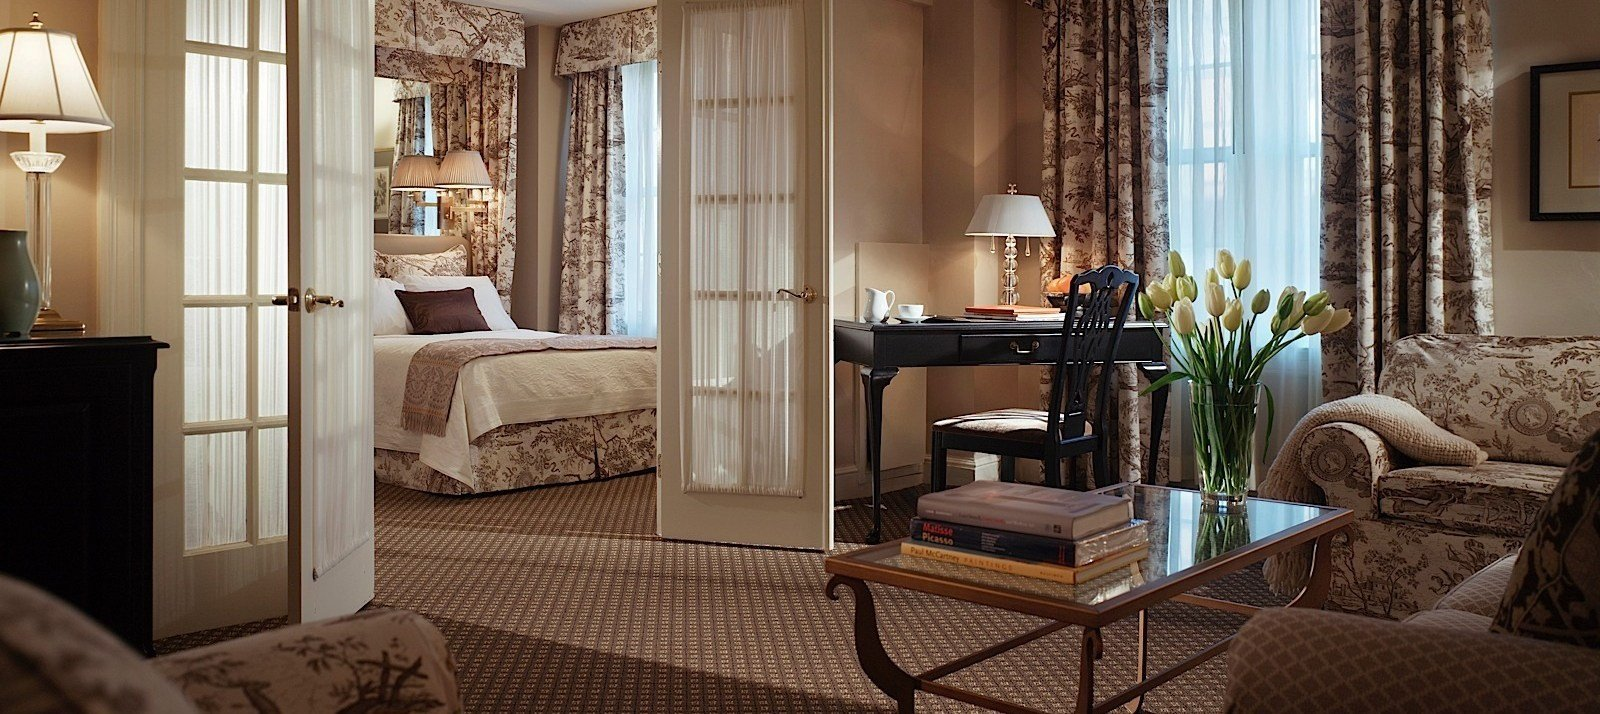 Best Rooms Hotel Suites In Boston Ma The Eliot Hotel With Pictures